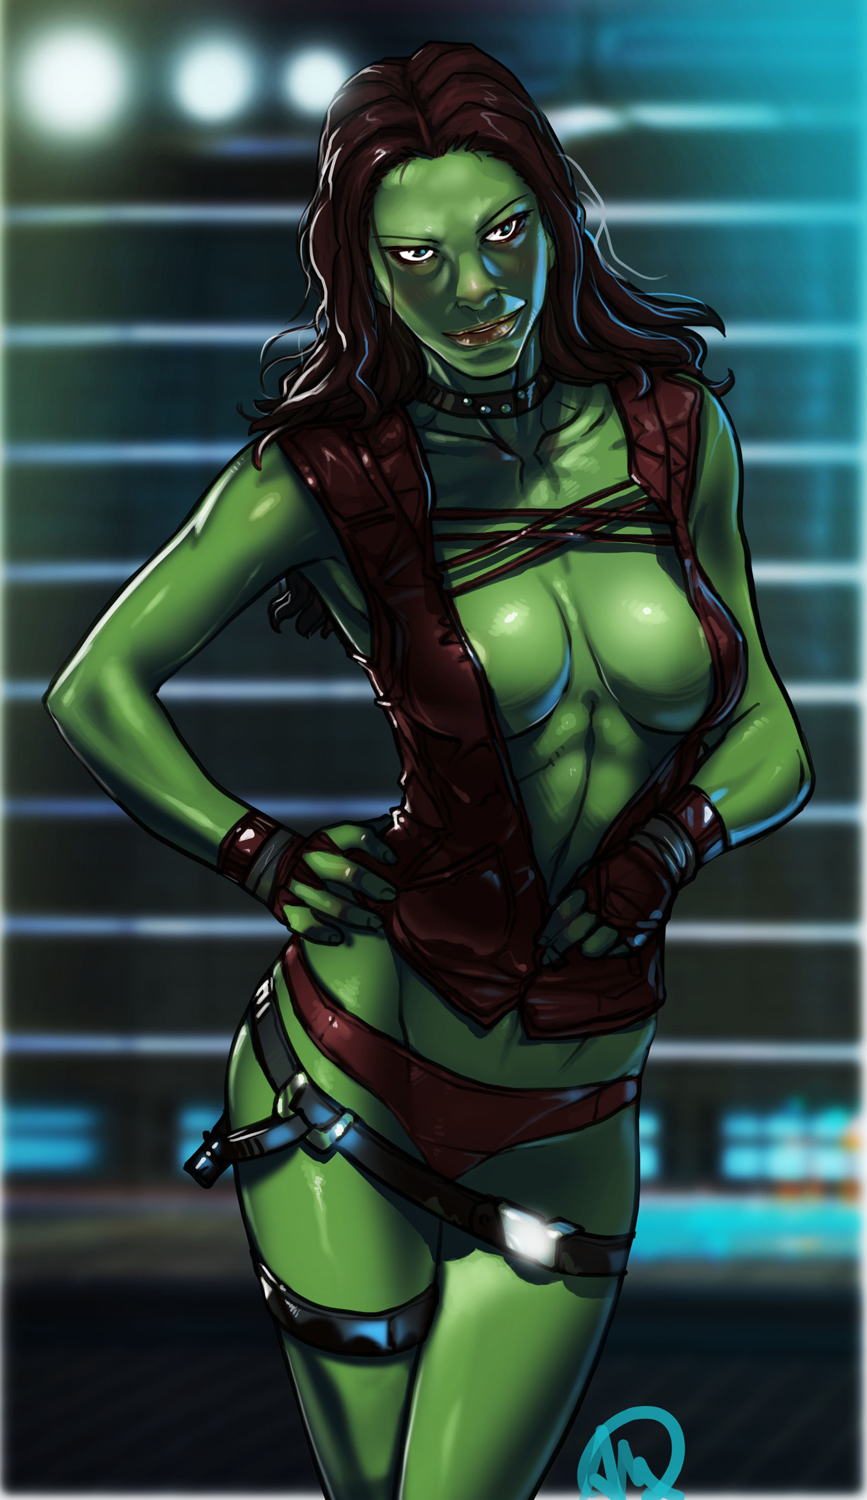 galaxy of the gamora guardians nude Amidala and anakin age difference